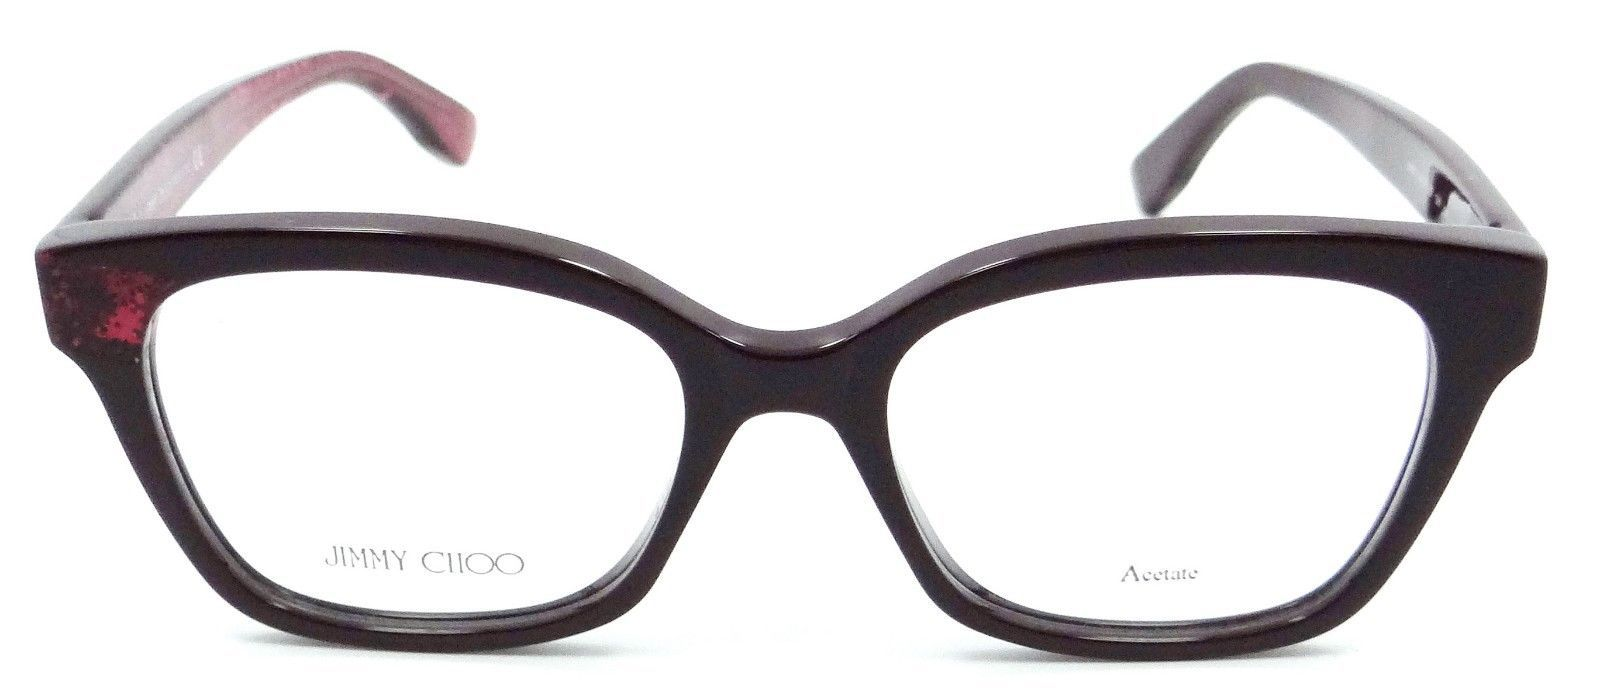 be0297acfe Jimmy Choo Rx Eyeglasses Frames JC 150 Q51 50-17-140 Red Glitter Made